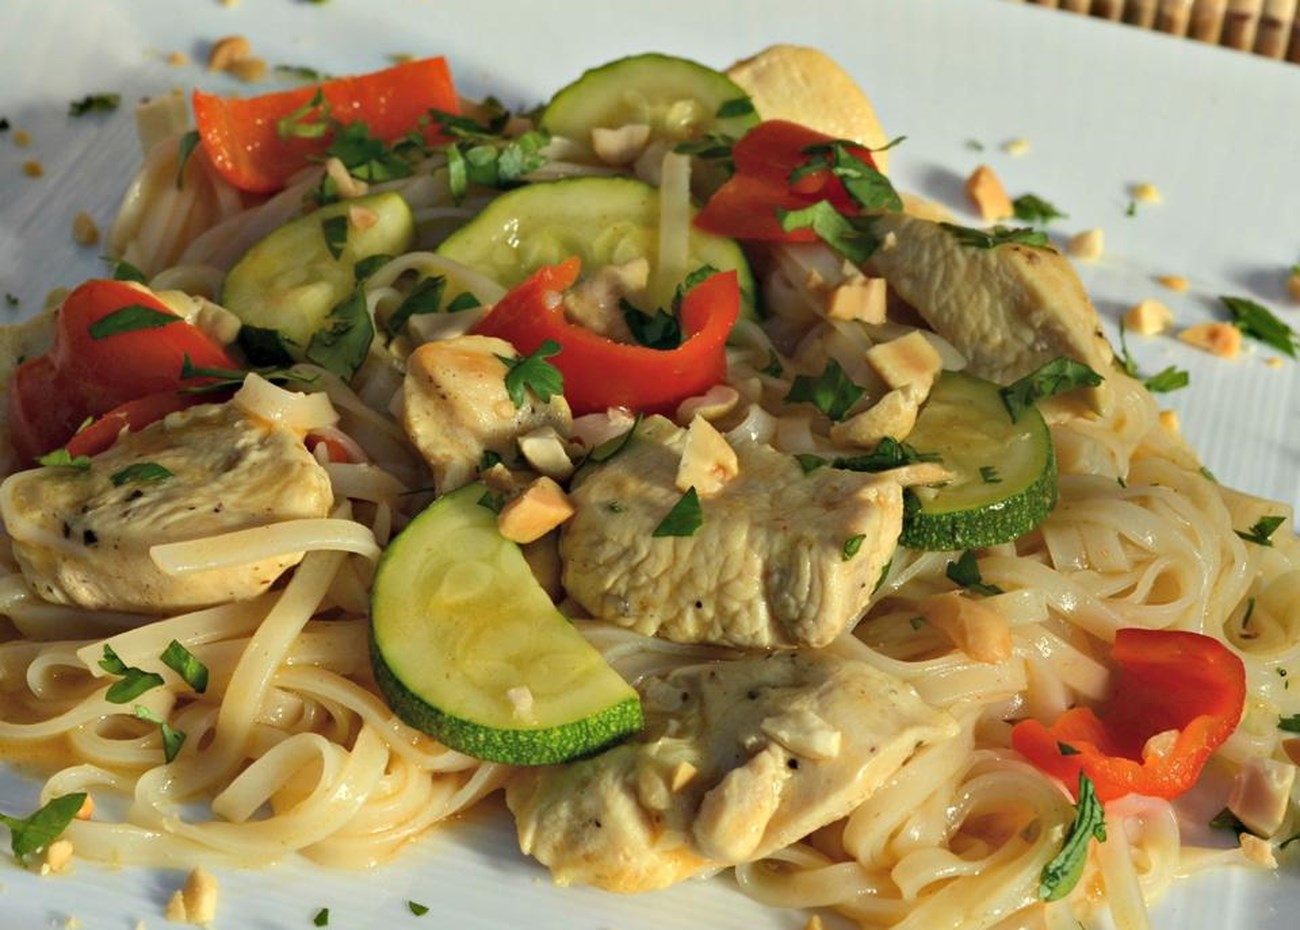 a colorful dish of wide rice noodles, zucchini, red bell pepper, chicken breast pieces, and chopped peanuts